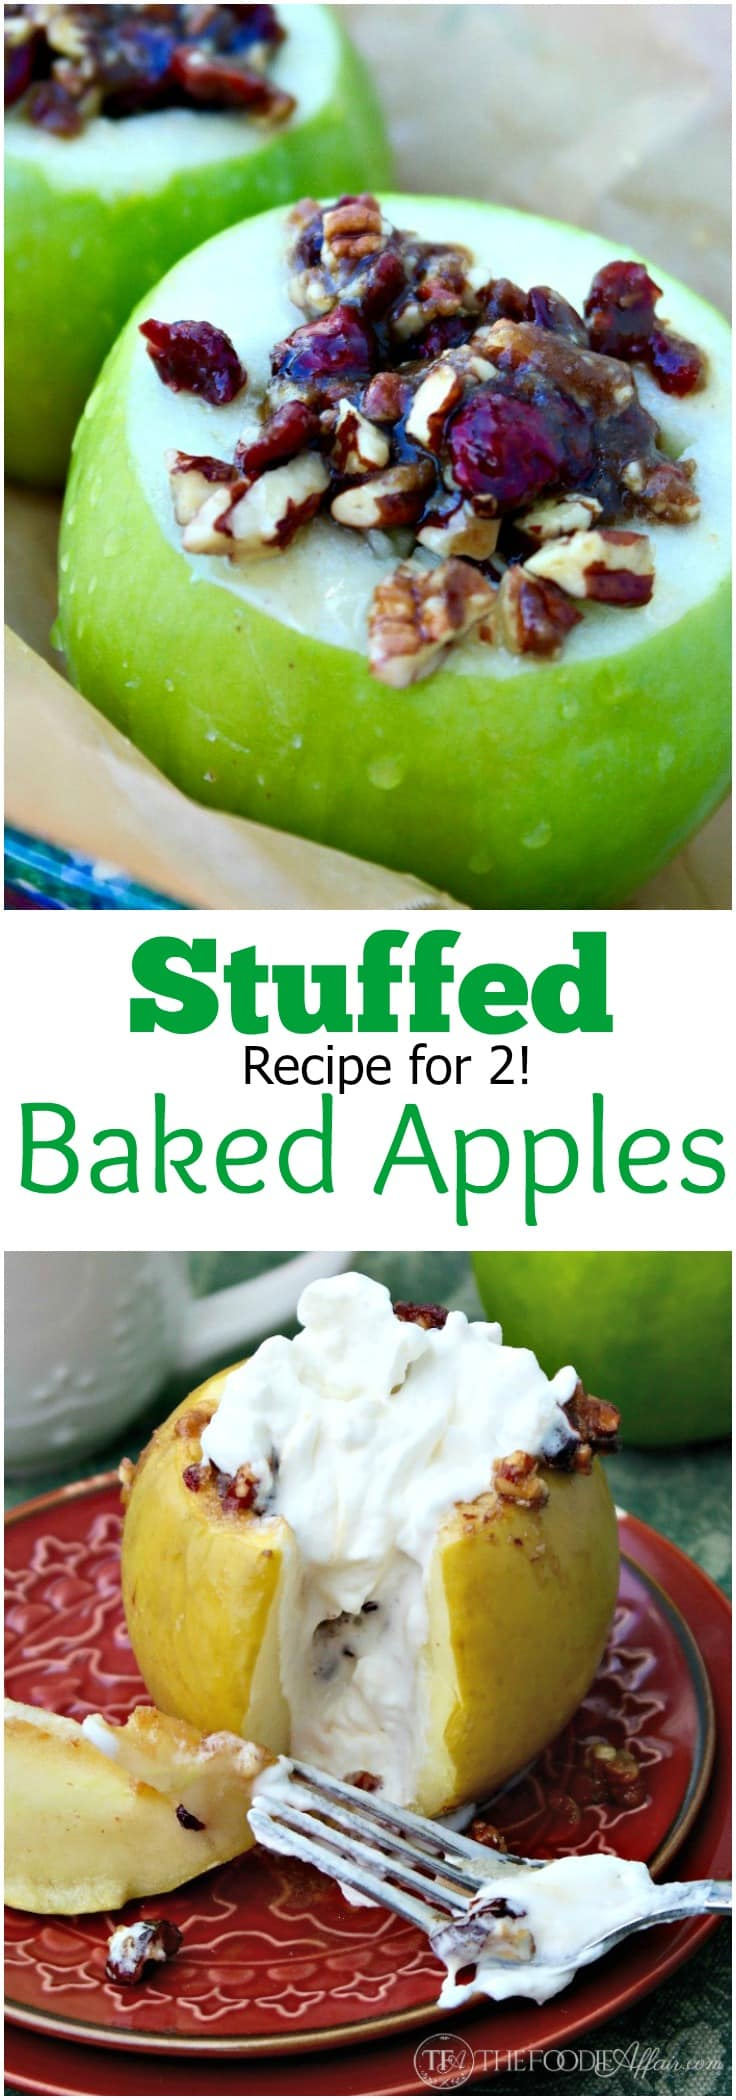 These stuffed baked apples are filled with chopped pecans, cranberries ...